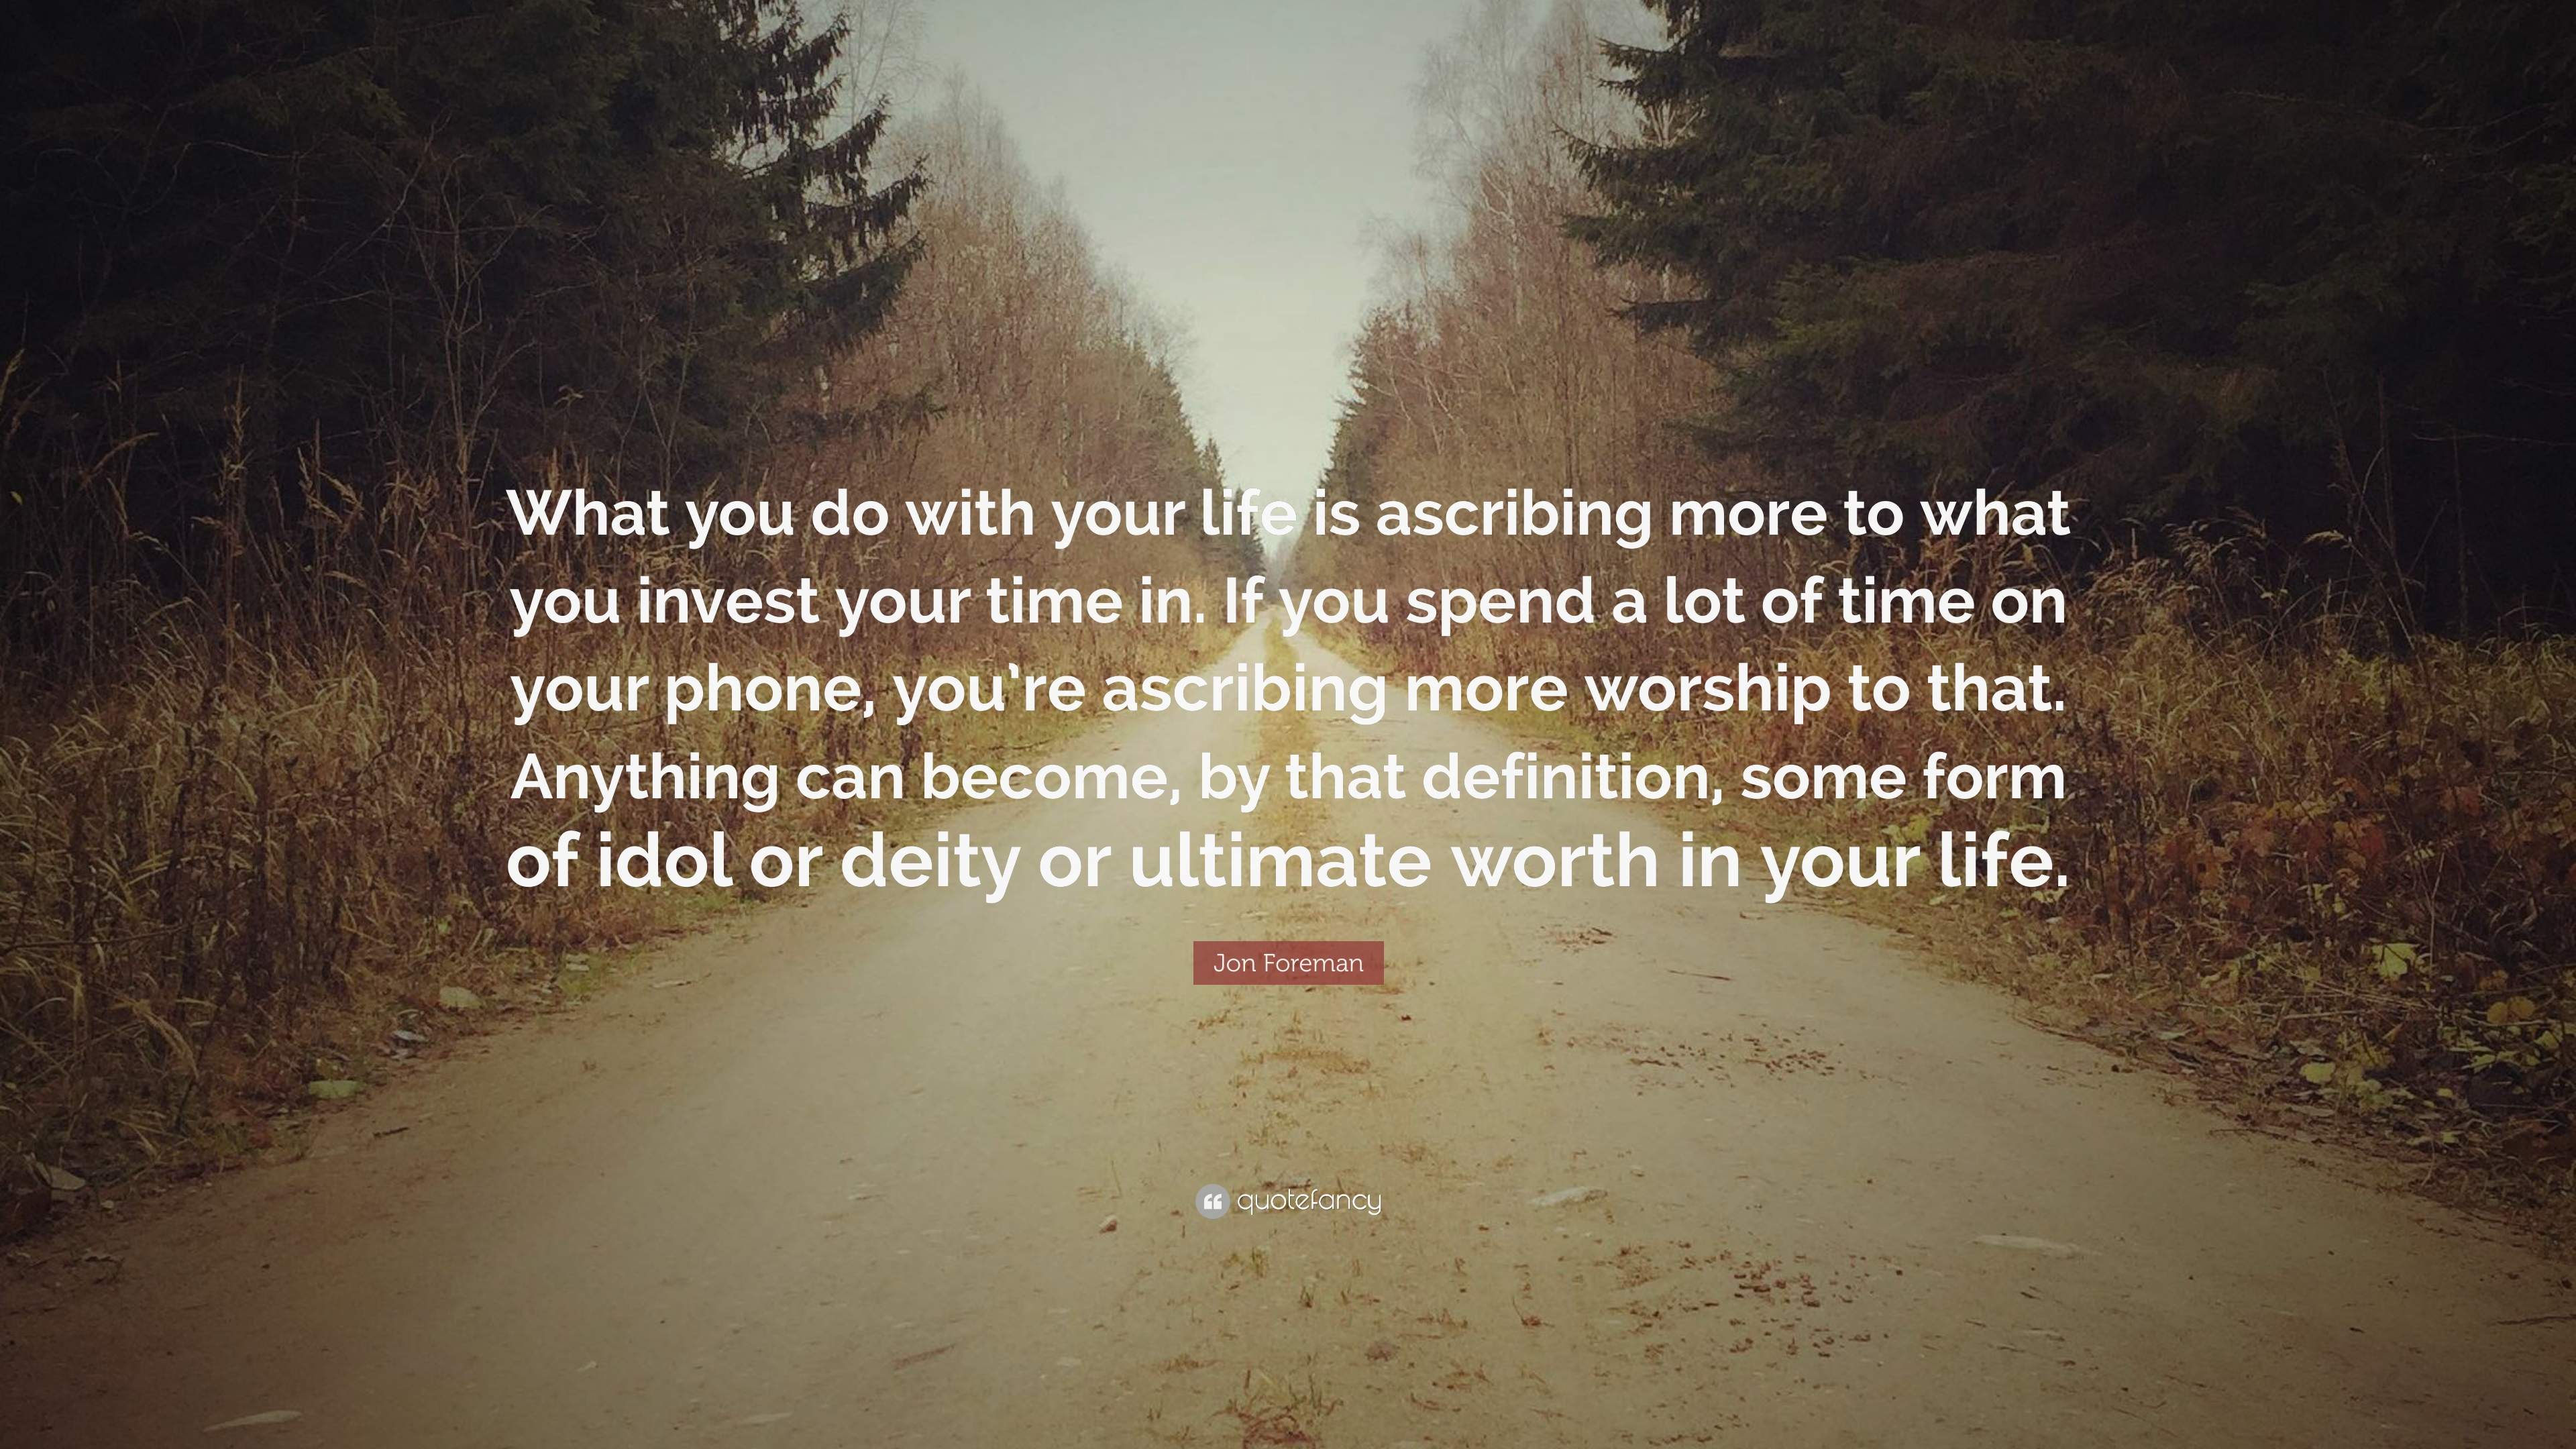 Jon Foreman Quote: U201cWhat You Do With Your Life Is Ascribing More To What